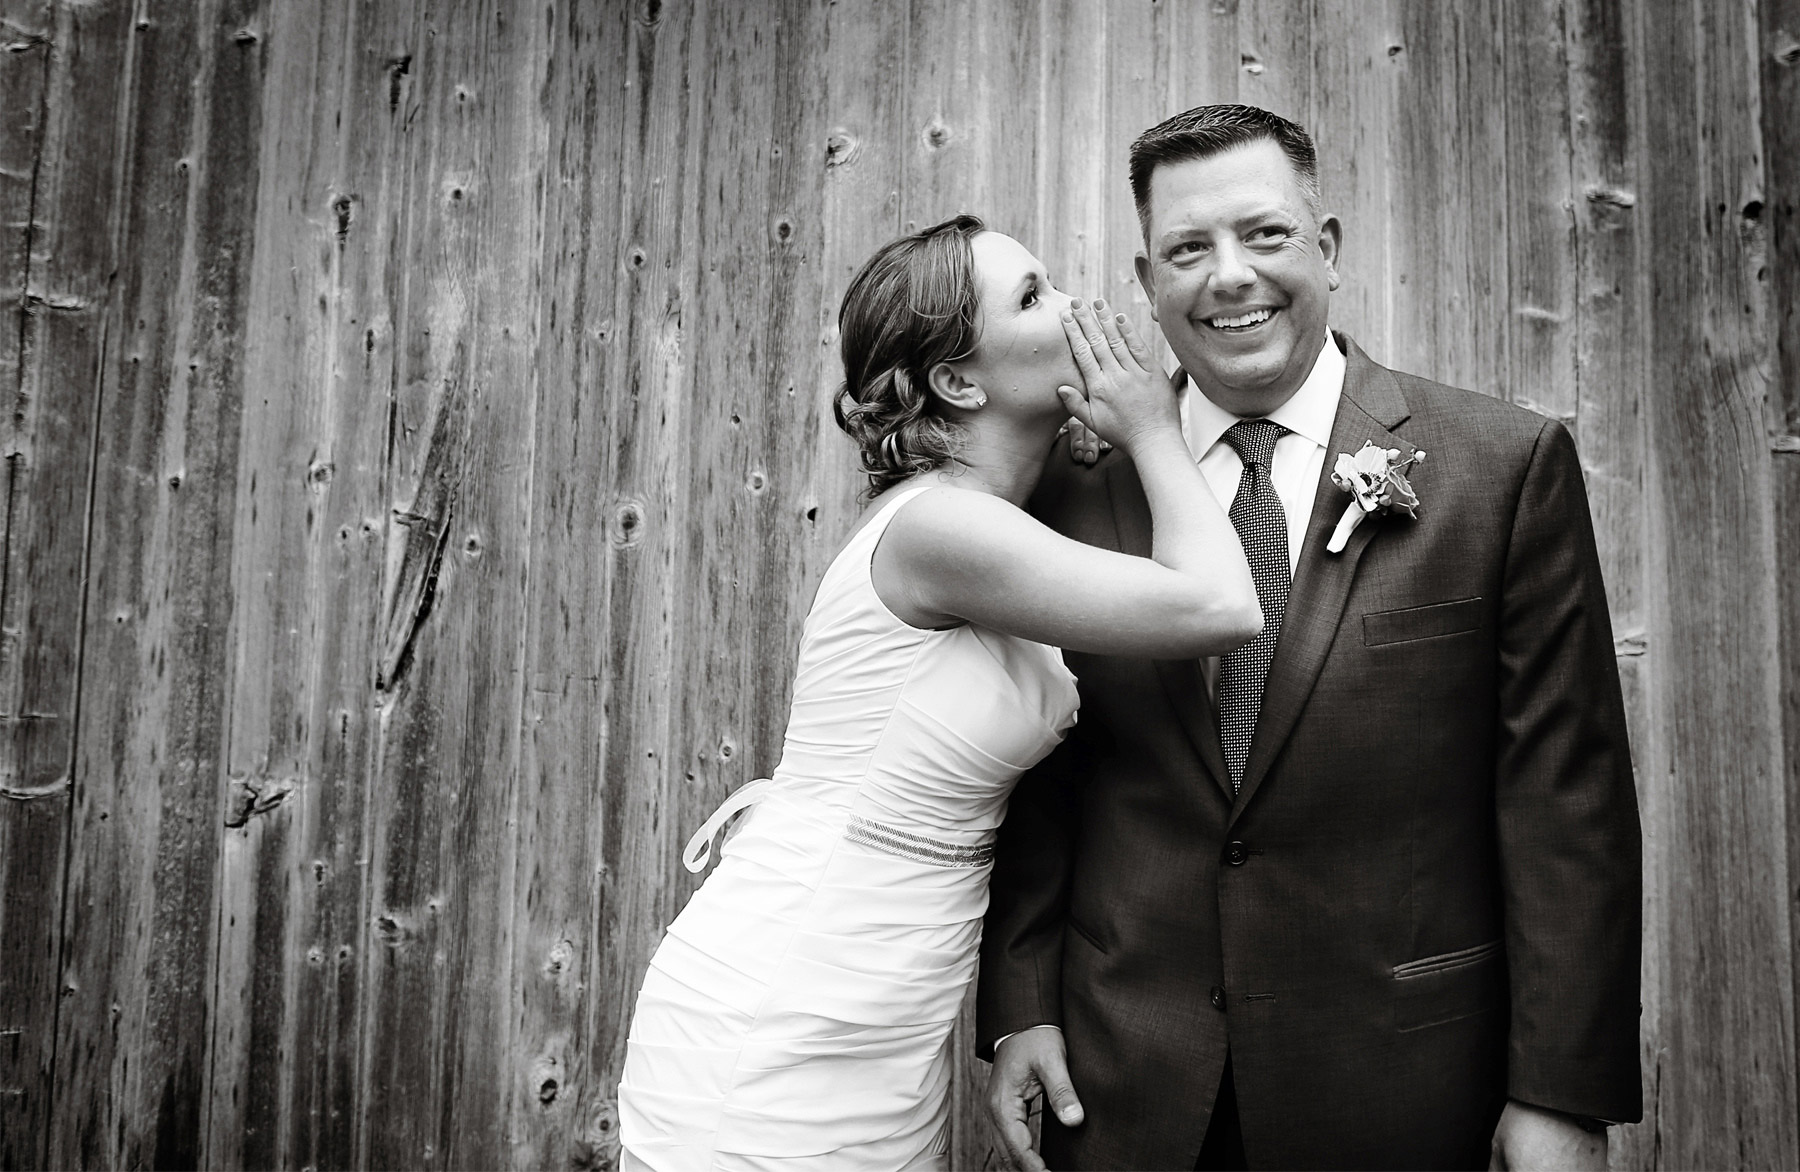 08-Des-Moines-Iowa-Wedding-Photography-by-Vick-Photography-Farm-Wedding-First-Look-Barn-Lindsay-&-Chad.jpg